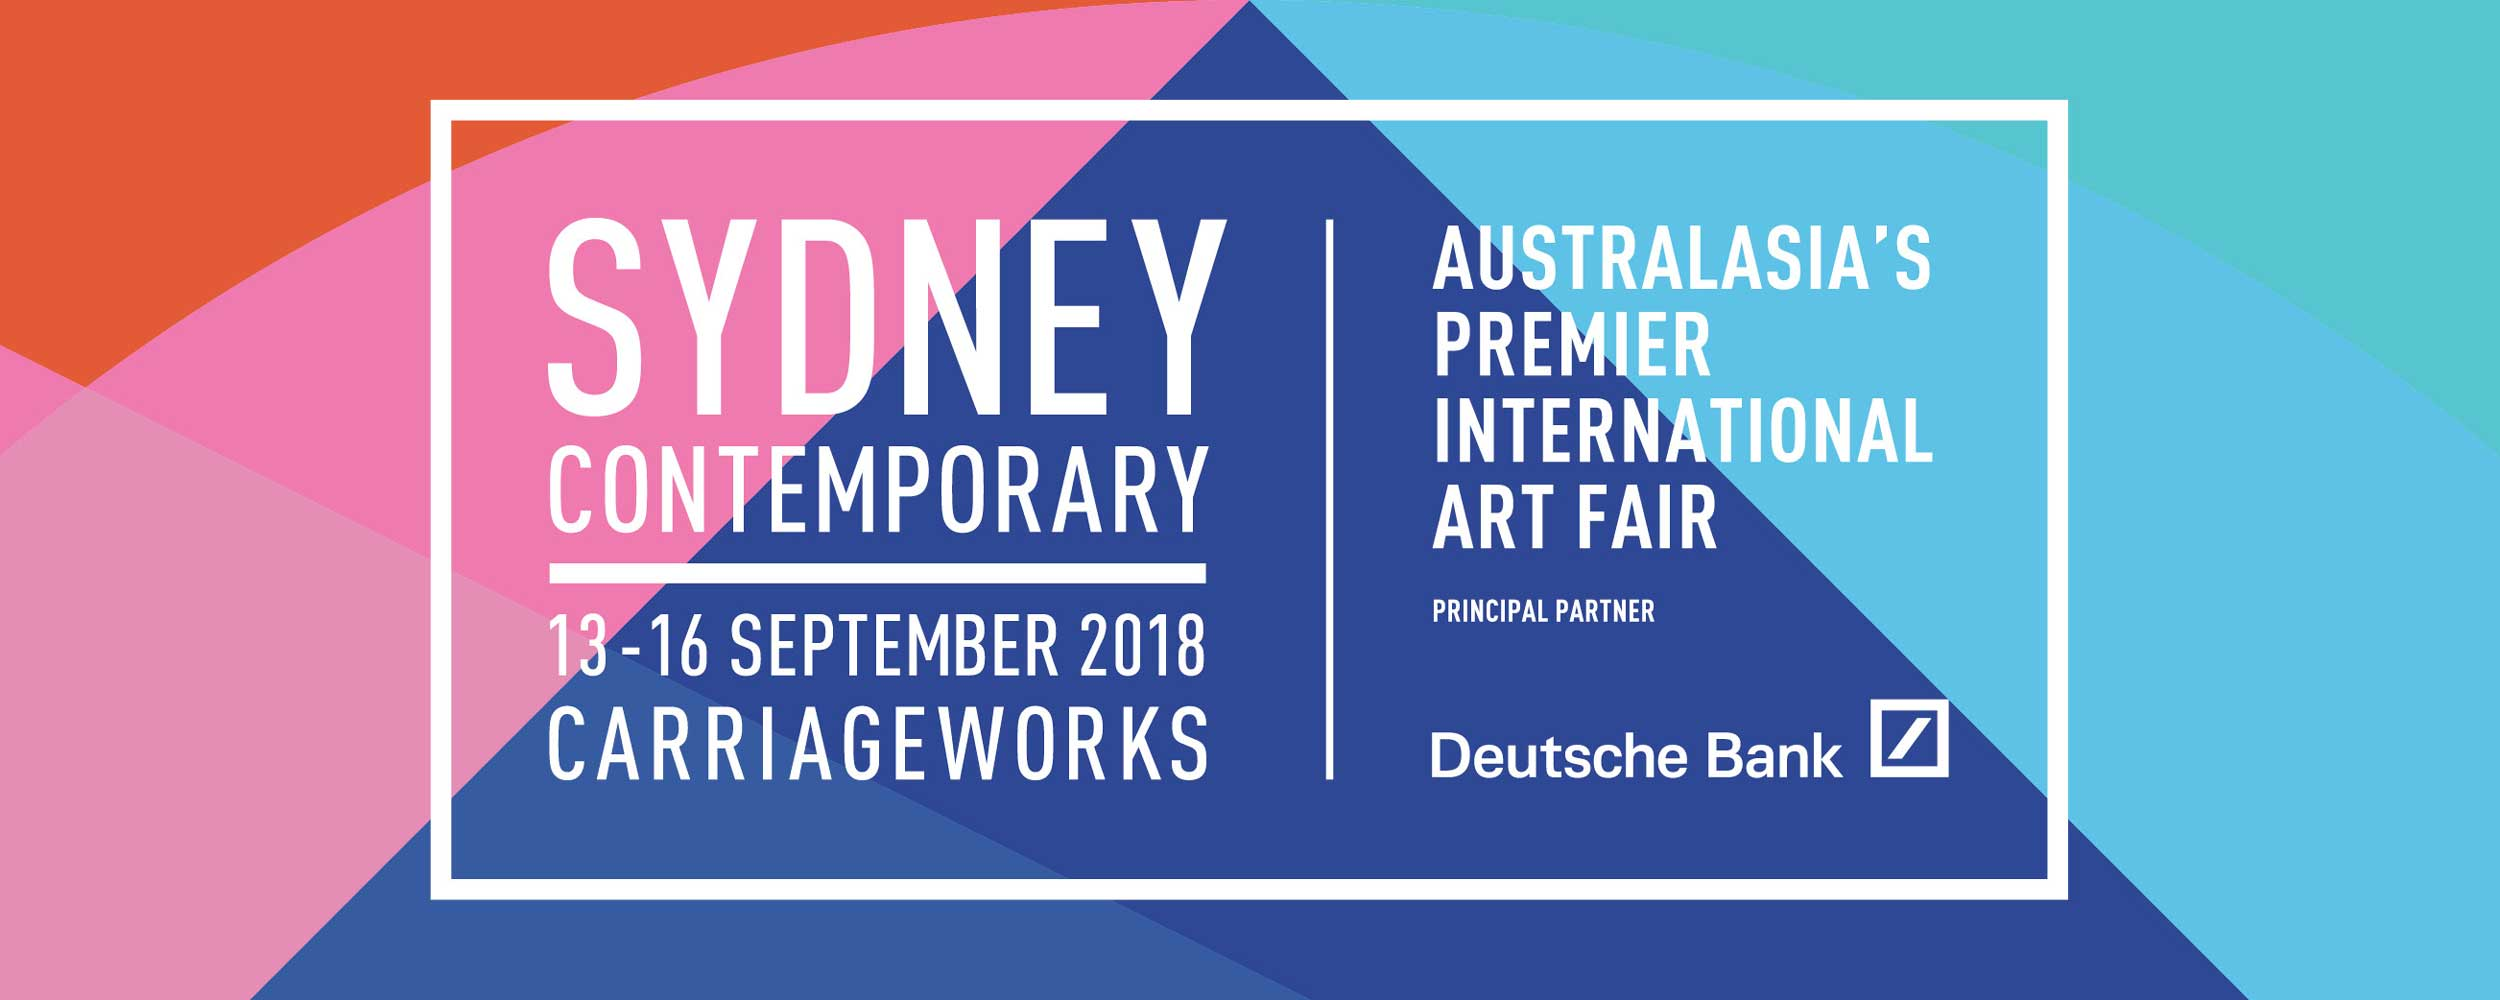 Sydney Contemporary 2018 Banner